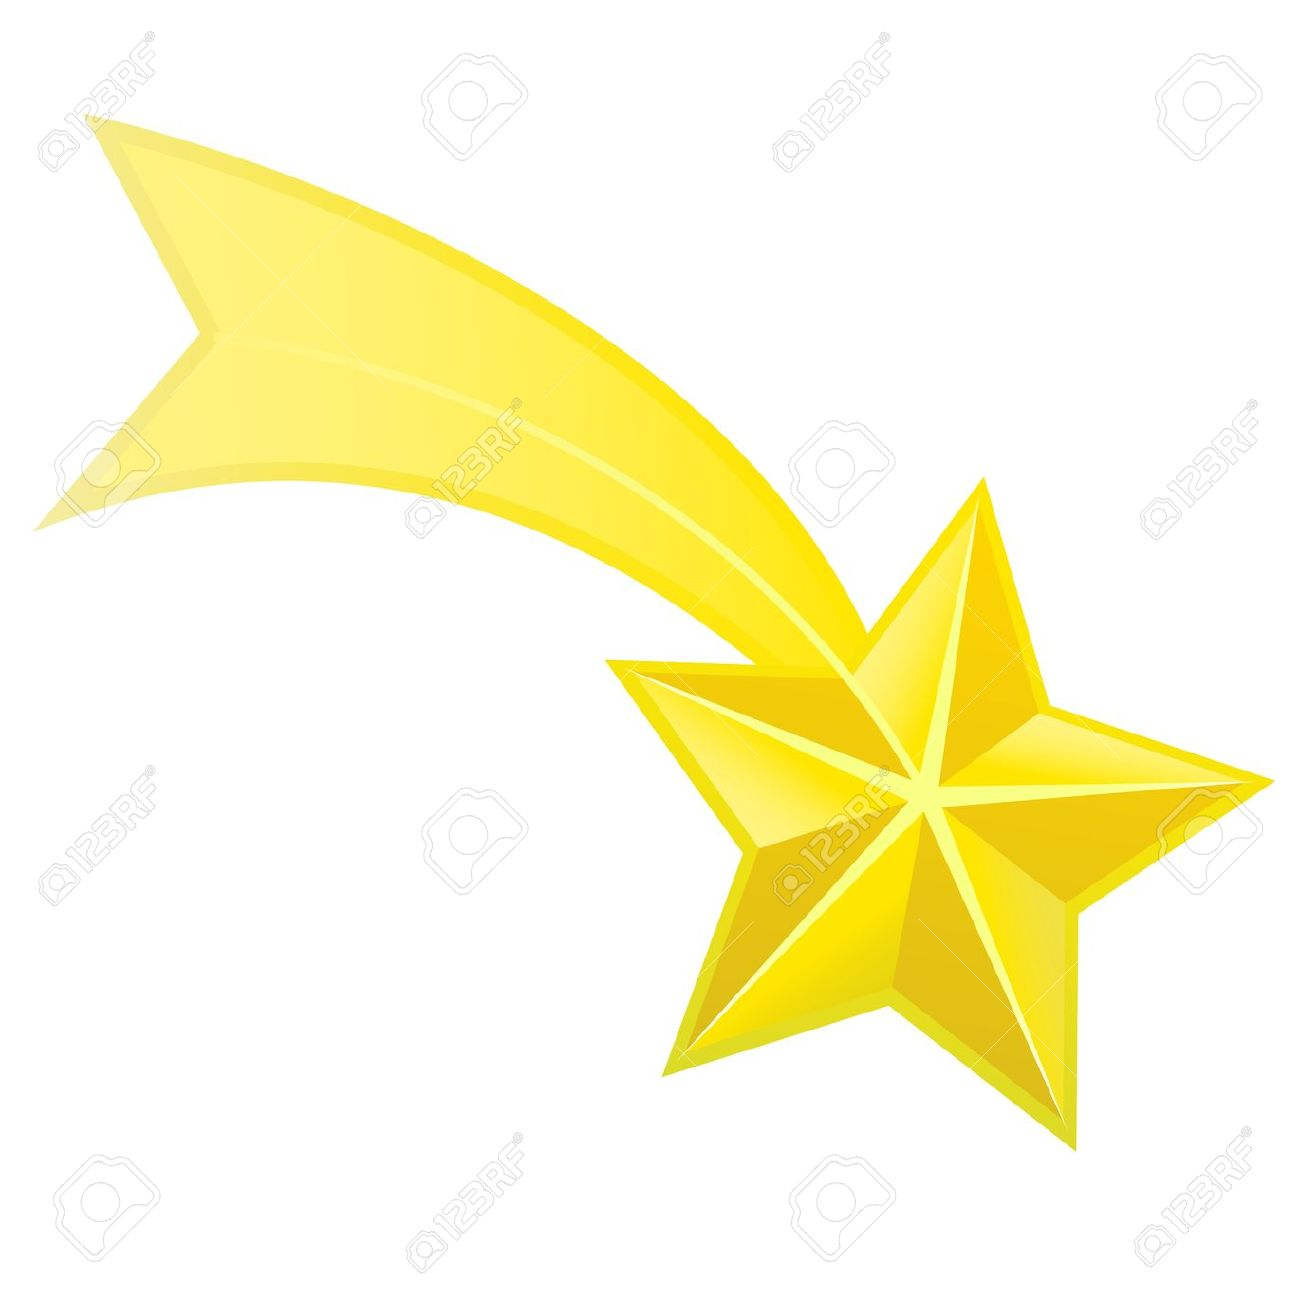 Shooting Star clipart comet (79+) Shooting Images Star Stock